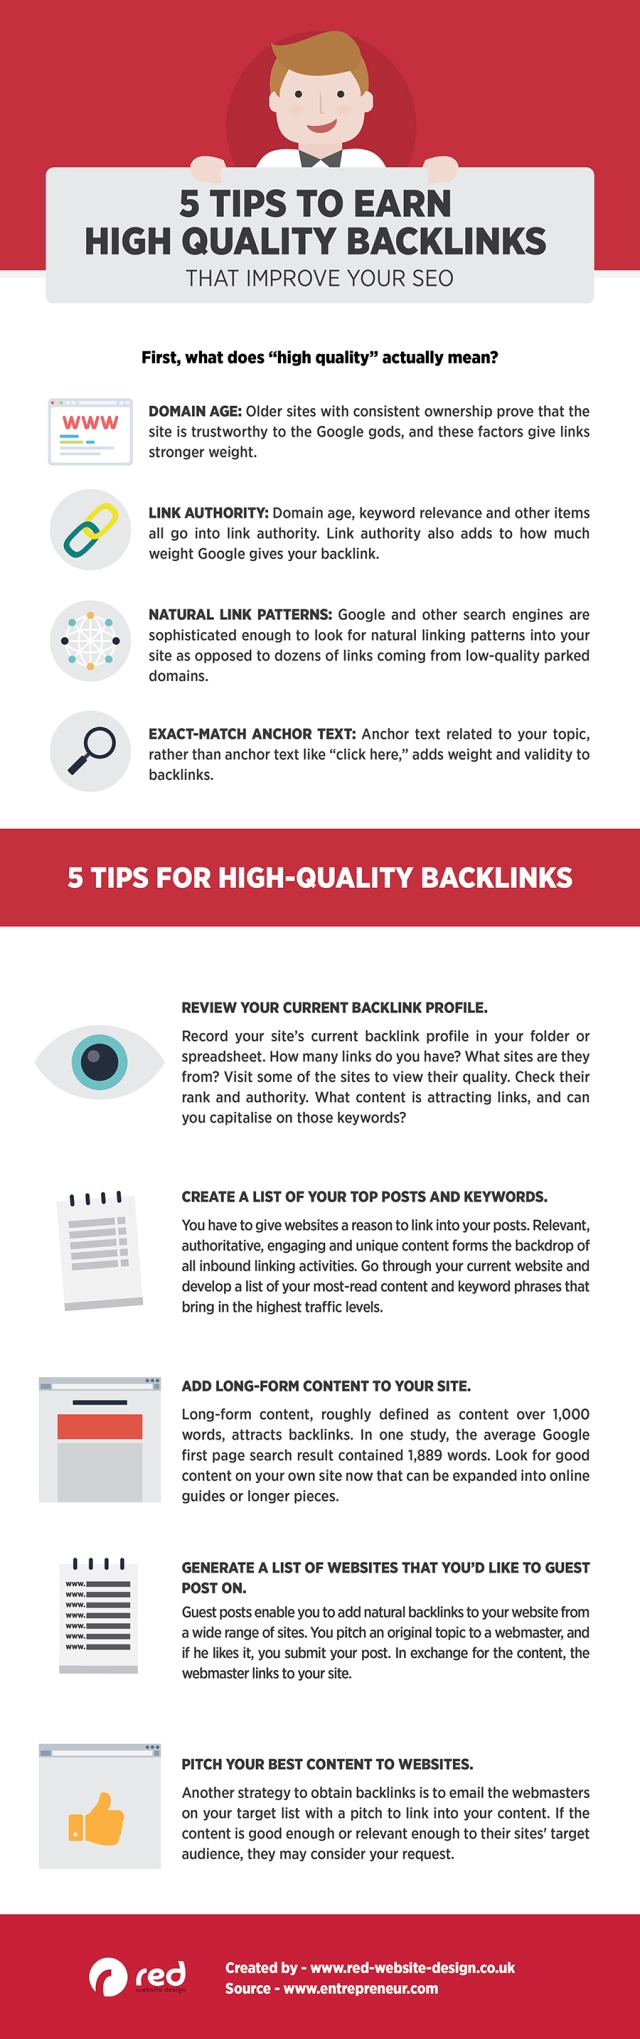 5-tips-to-earn-high-quality-backlinks-that-will-improve-your-seo